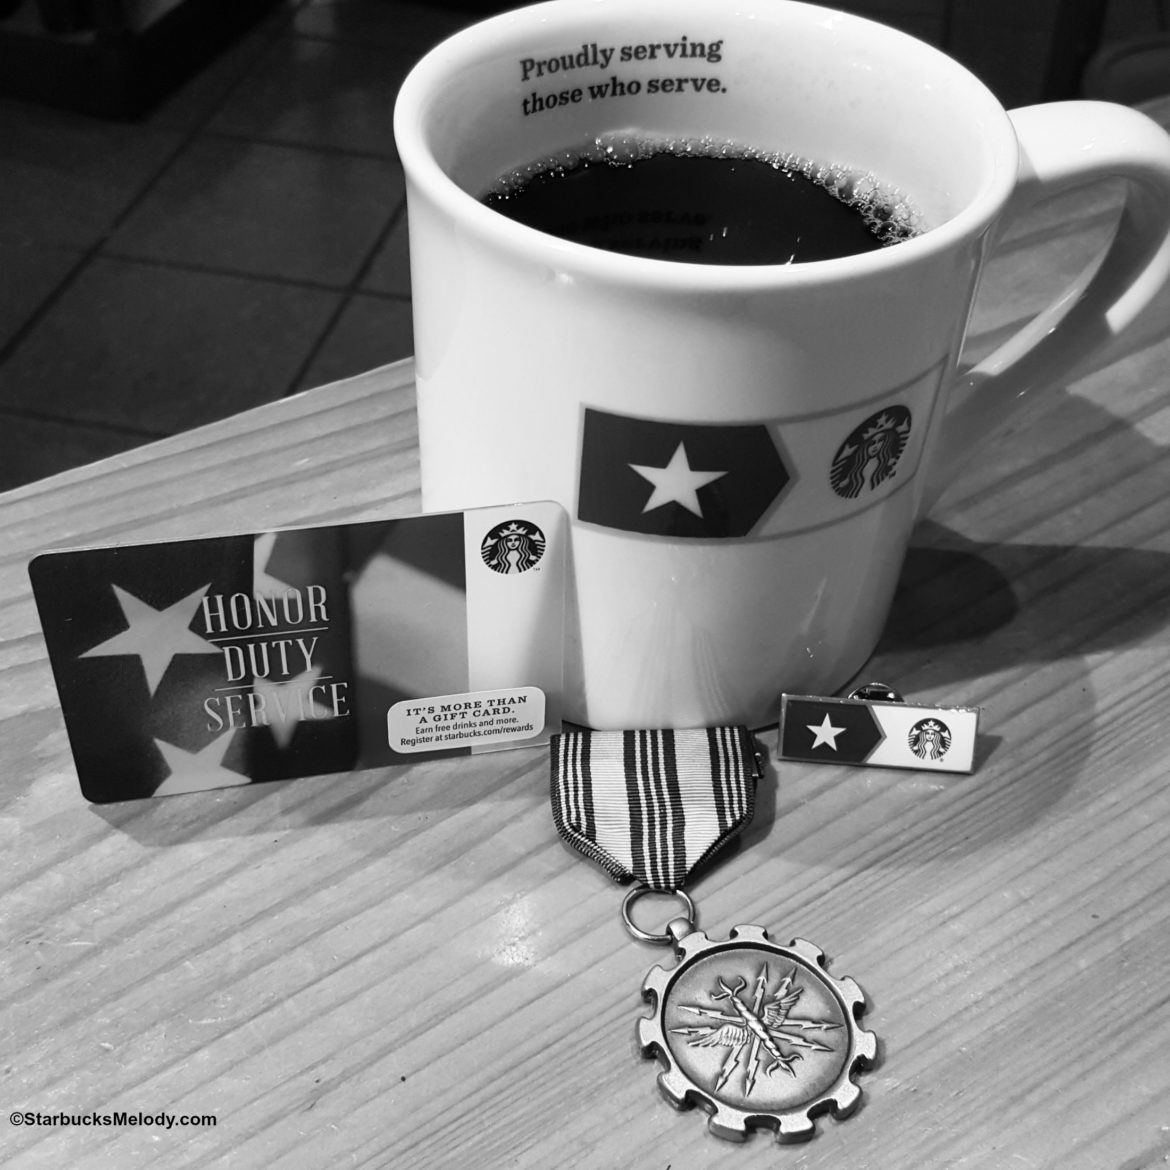 Veteran's Day 2015: Free tall coffee for veterans (and military spouses) at Starbucks